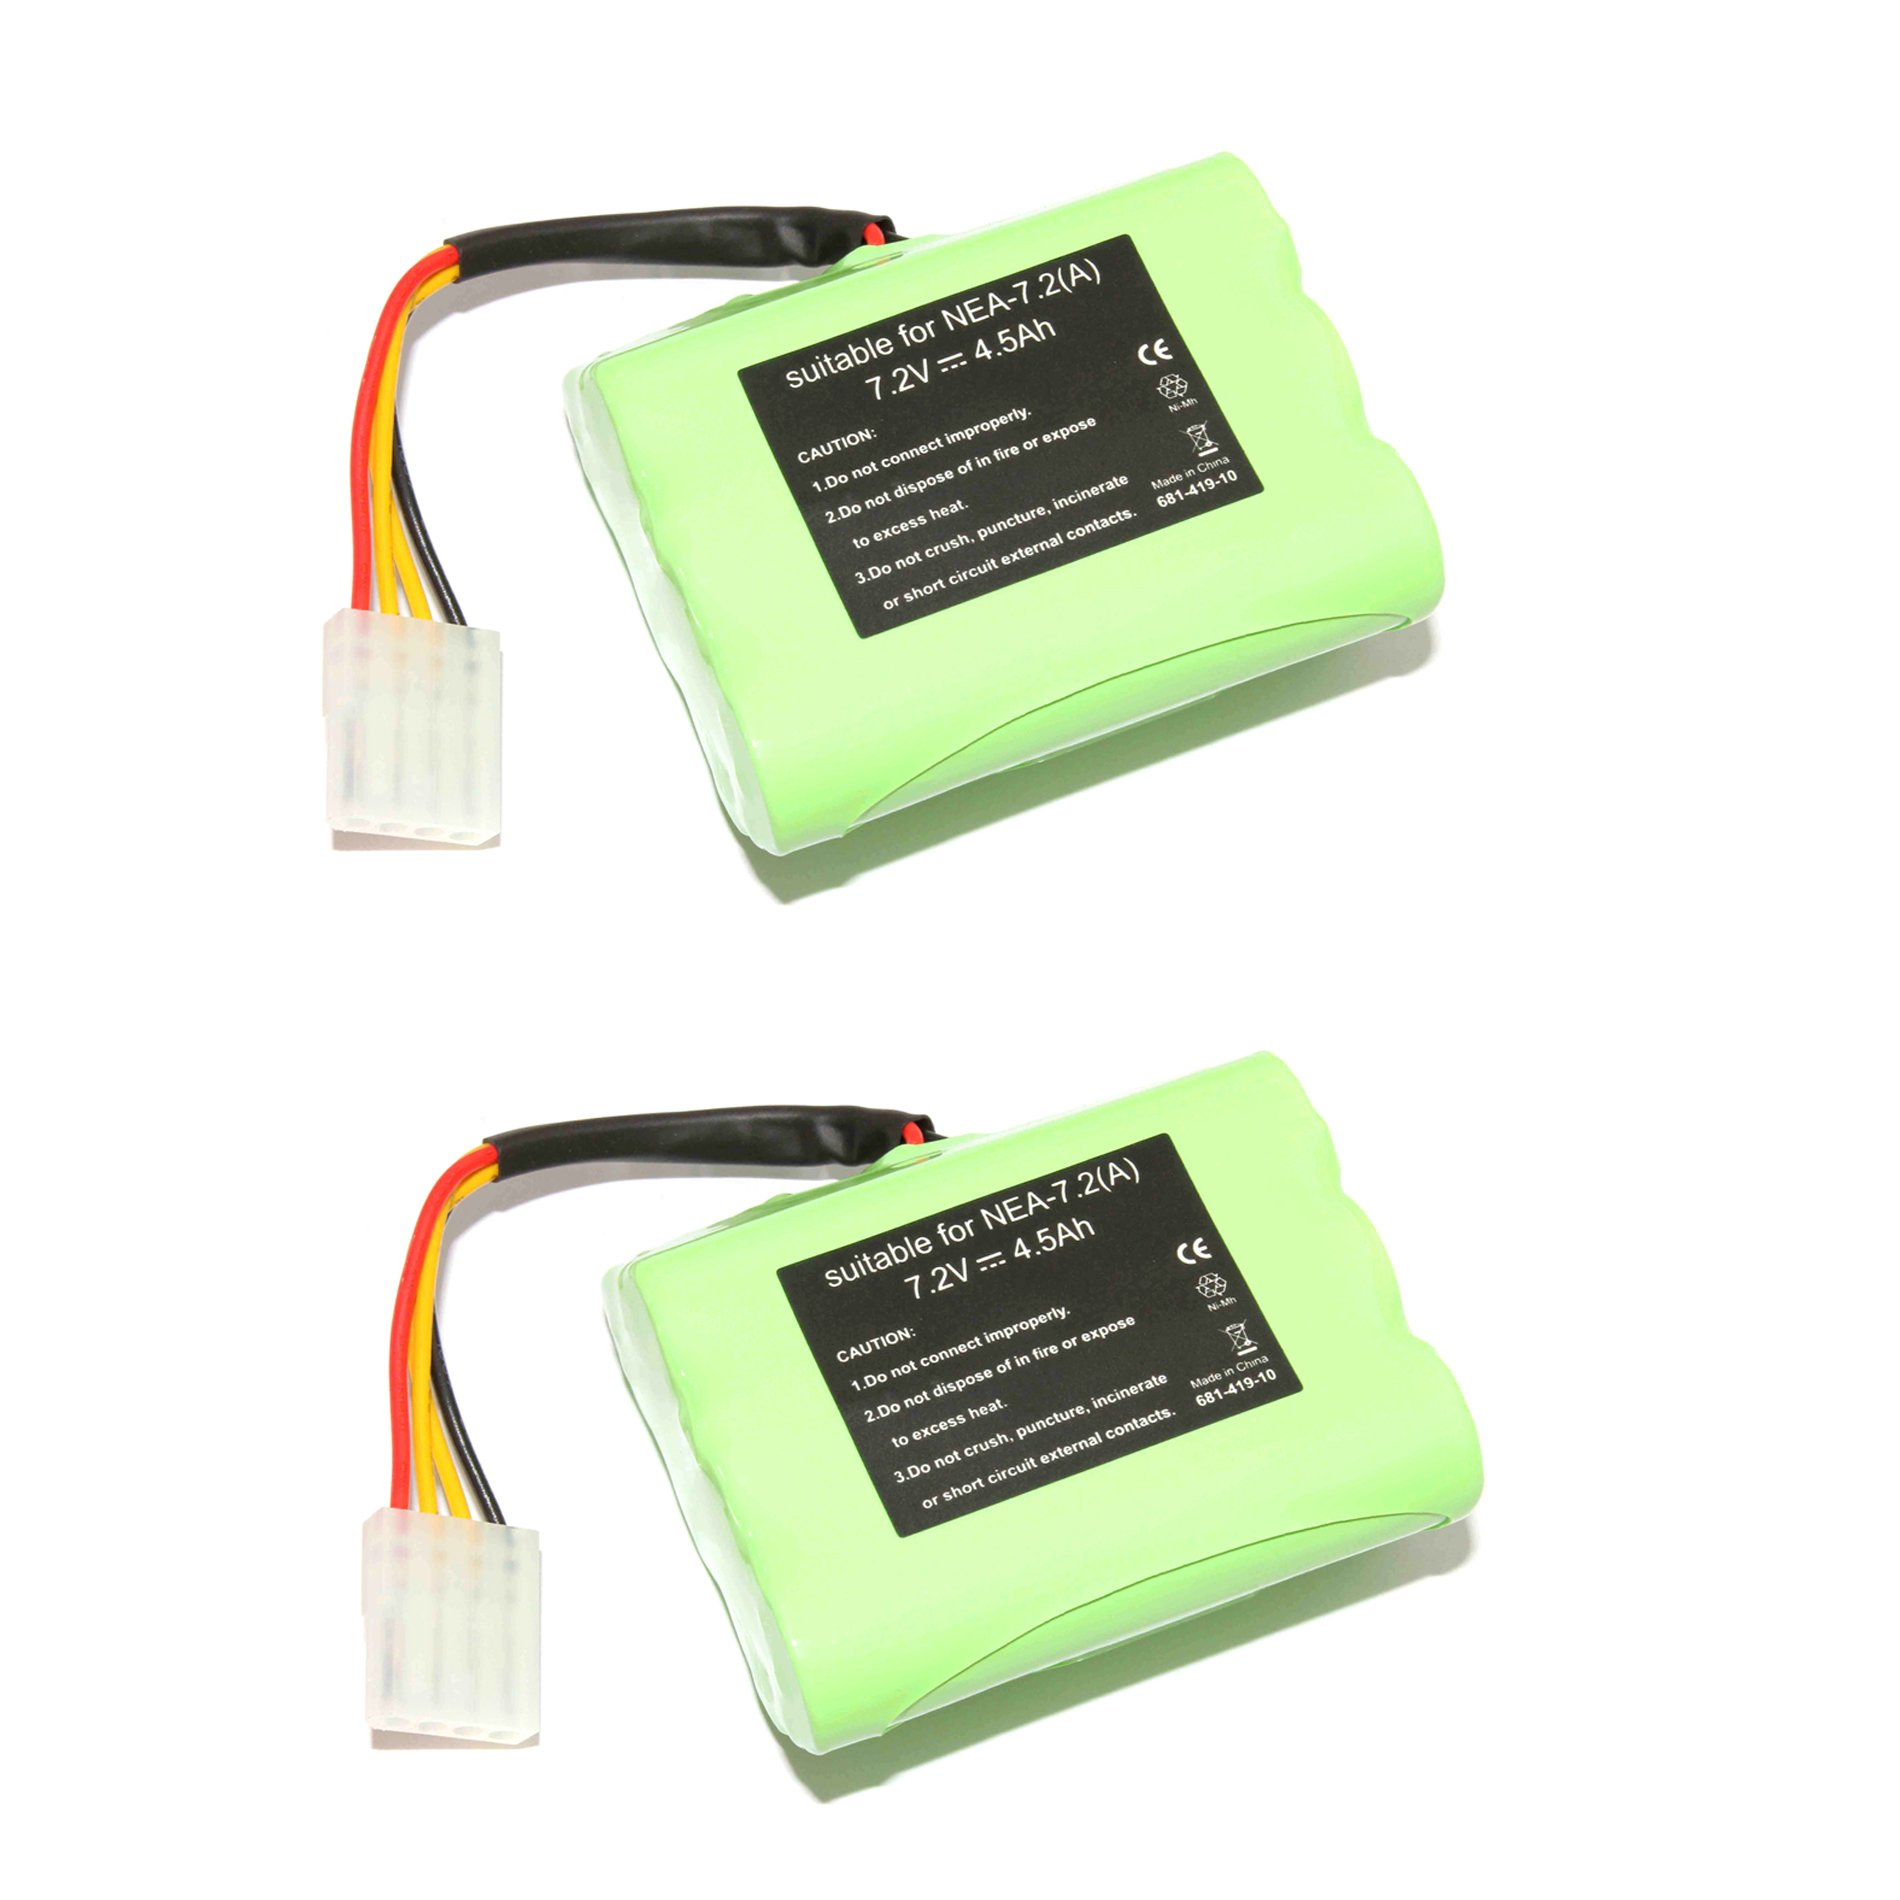 IDS Home 2pcs 7.2V 4500mAh Ni-Mh Vacuum Cleaner Replacement Battery for Neato VX-11 VX-21 VX-15 VX-12